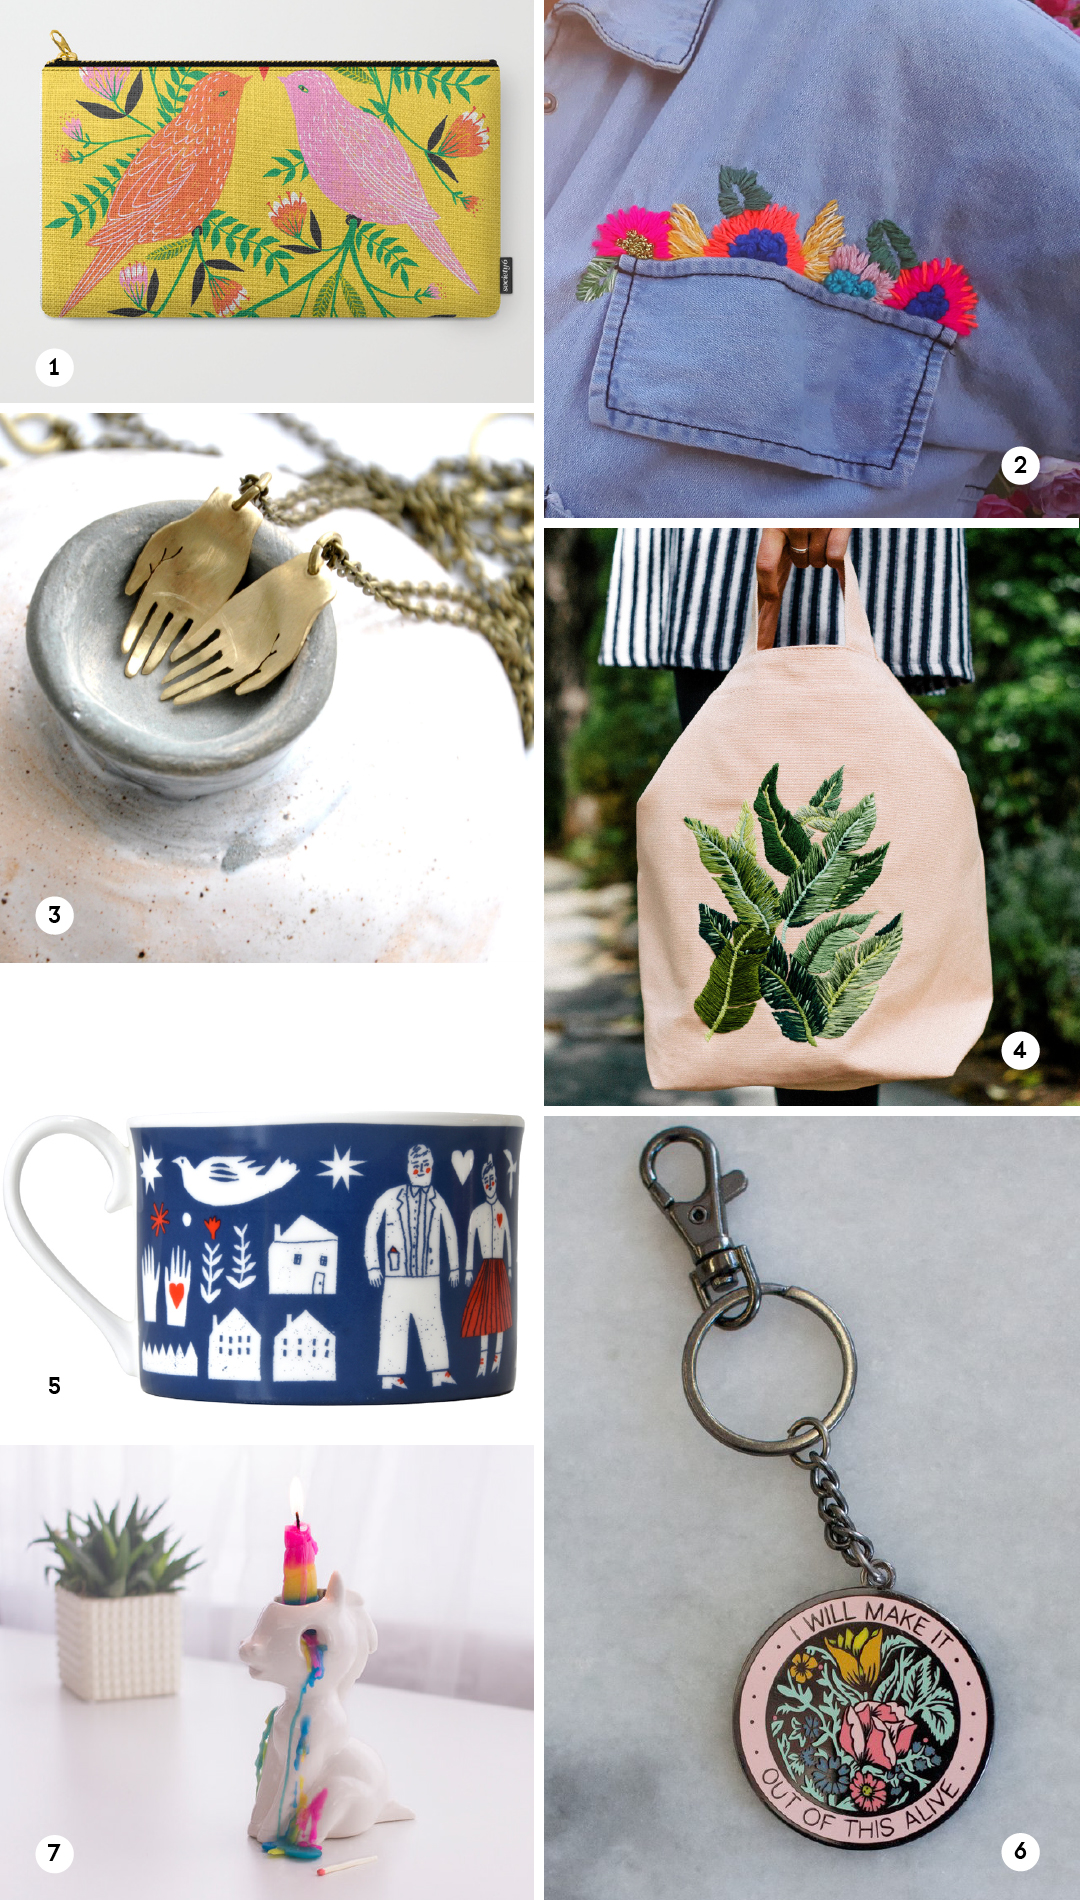 Creative Products, September 22